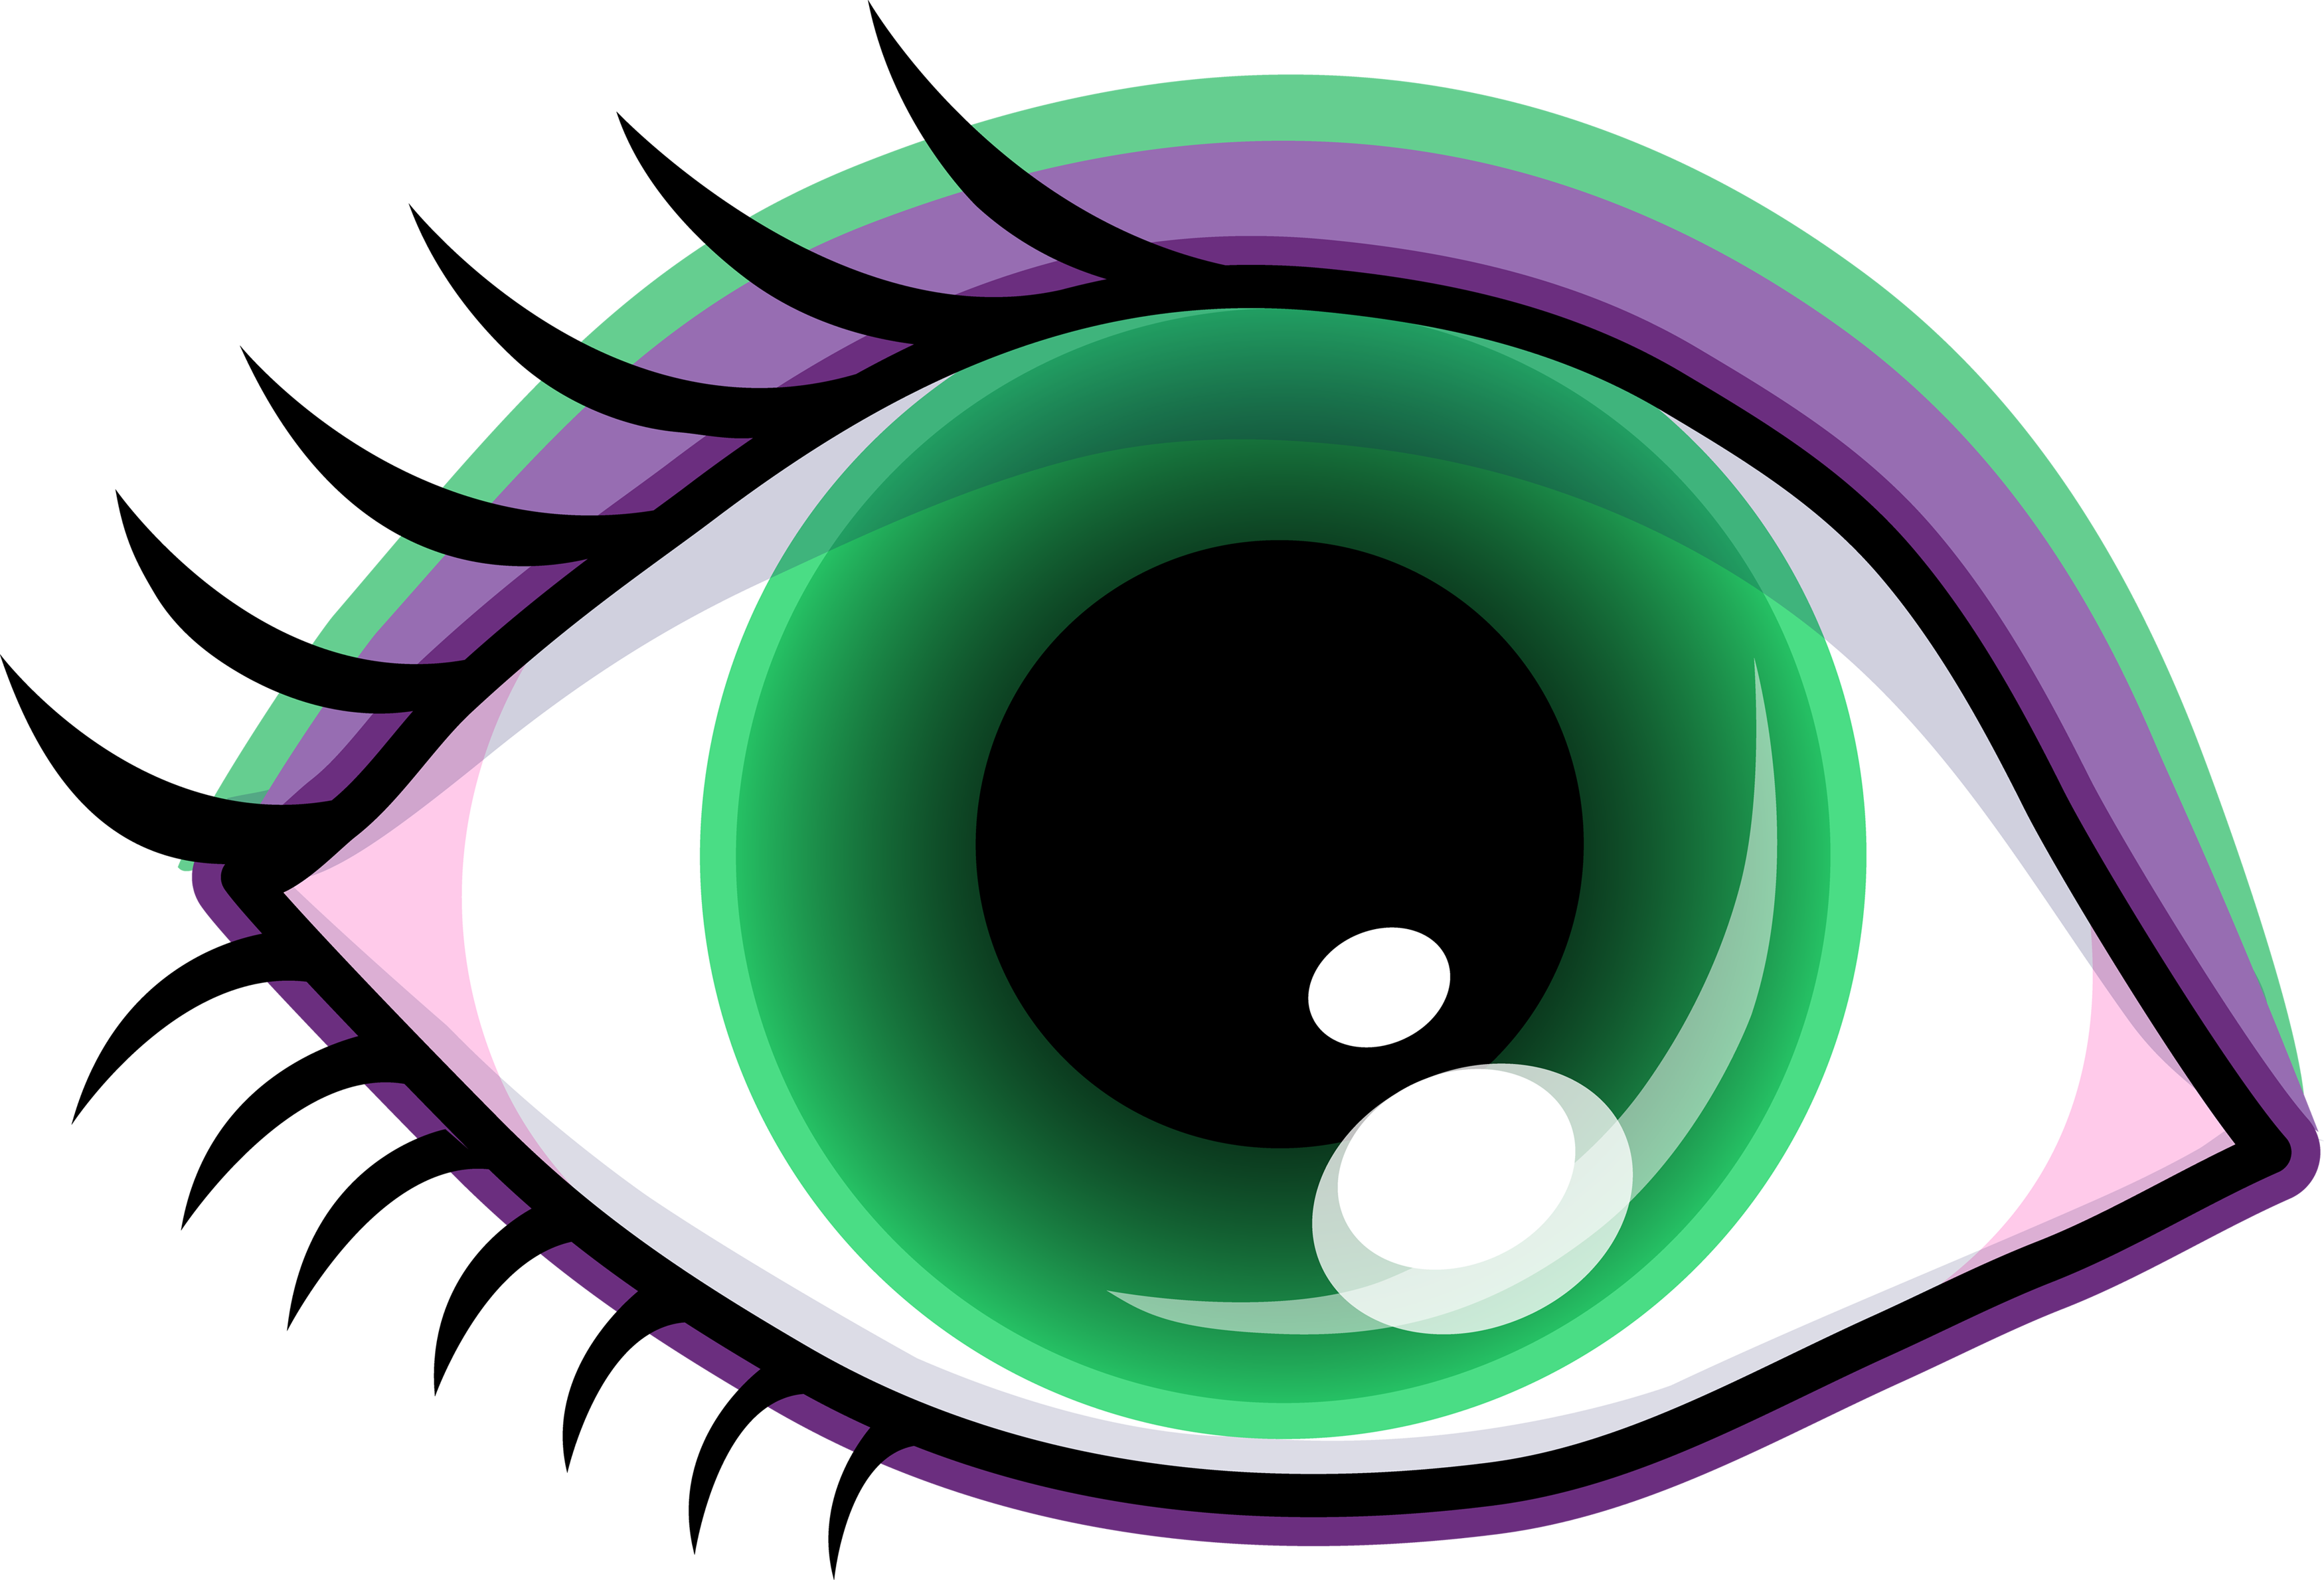 Eye Clipart - Clipartion.com